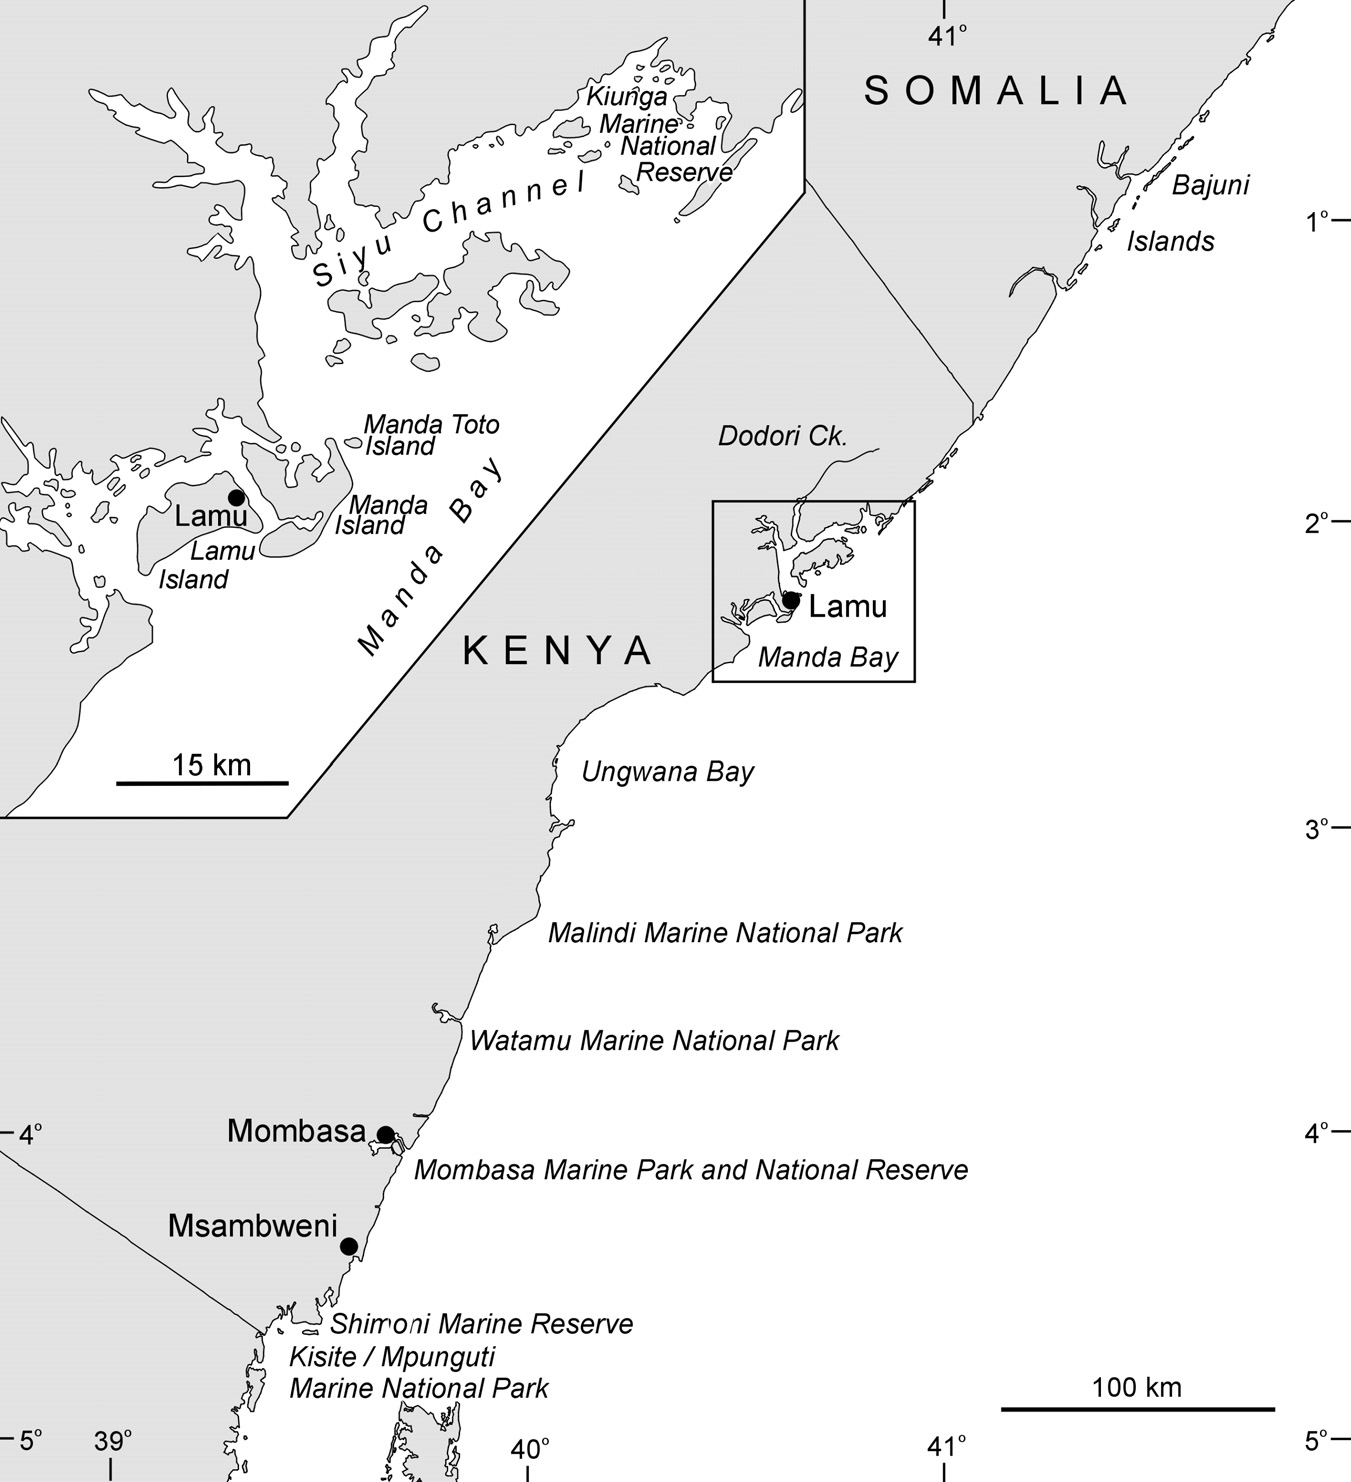 Dutton (1994) considered that the waters around the Bazaruto Archipelago supported the last viable dugong population along the East African coast.